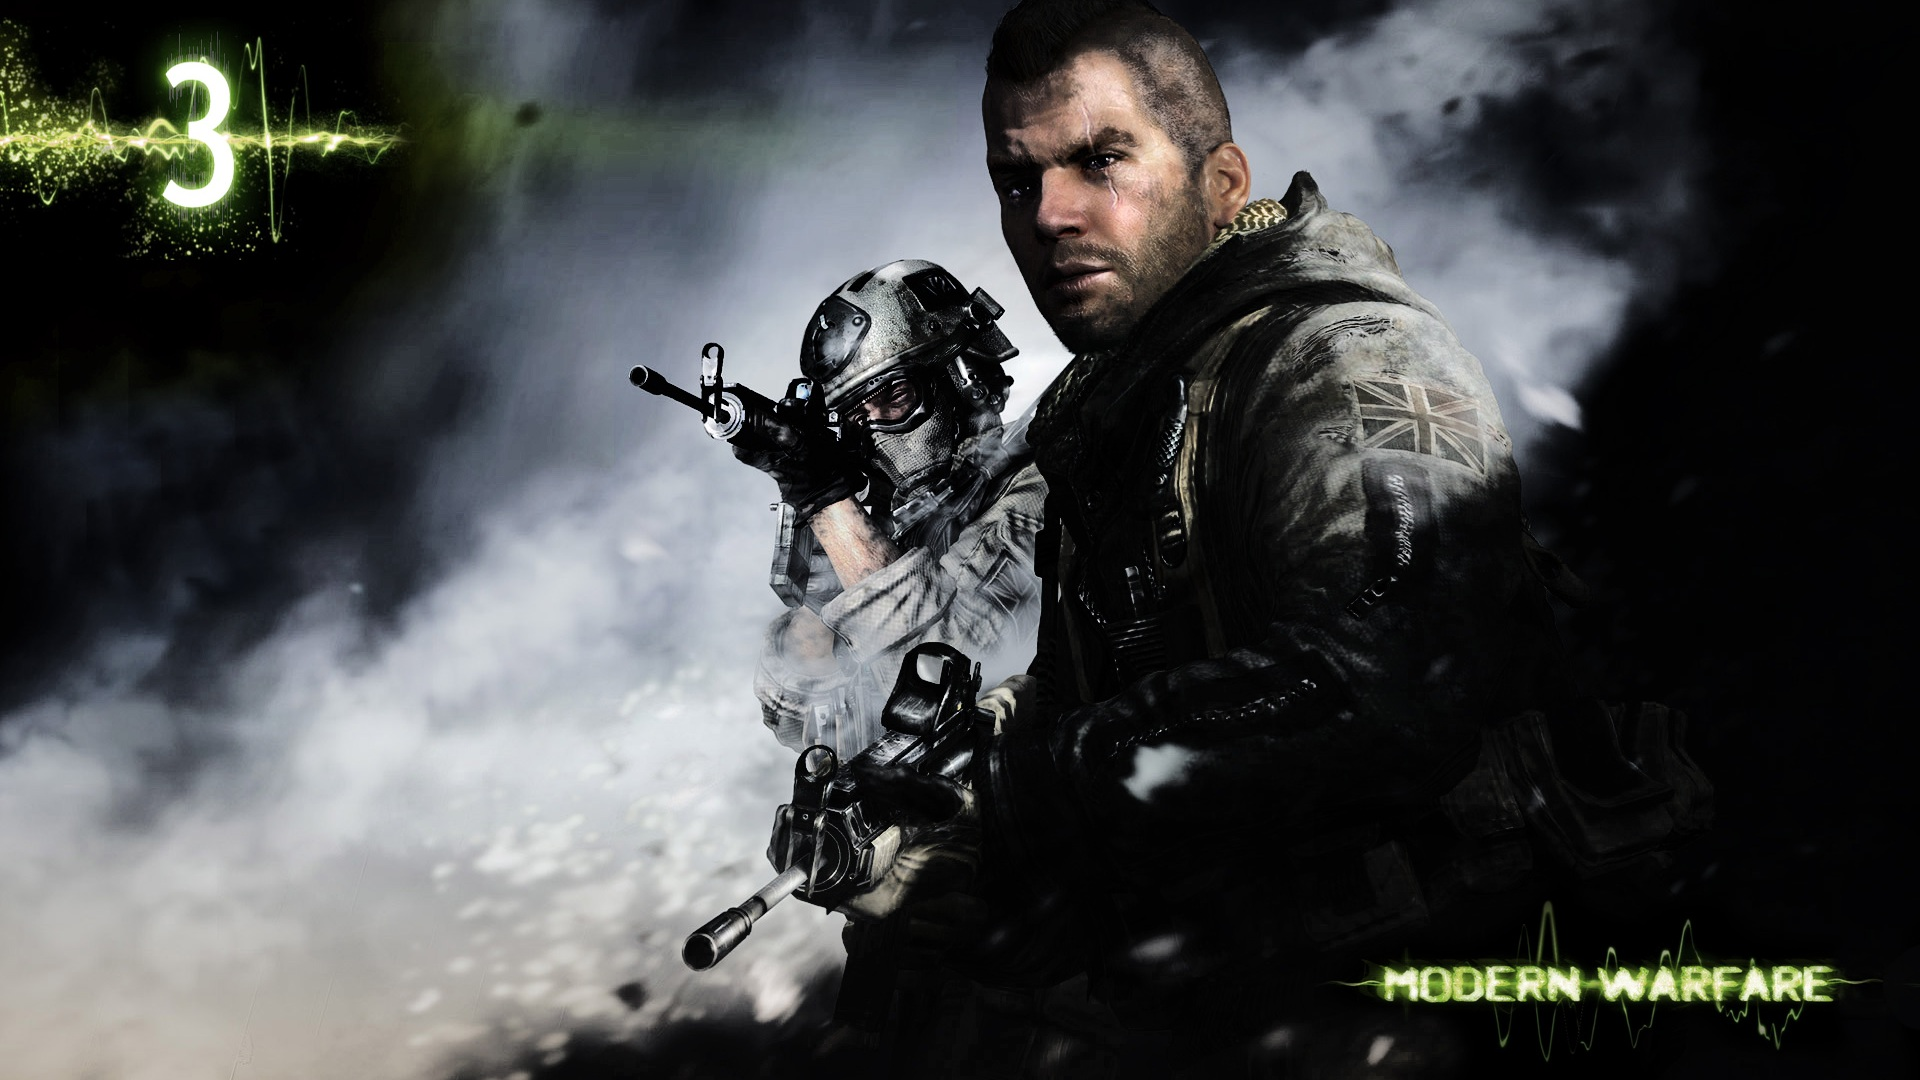 Wallpaper #1 Wallpaper from Call of Duty: Modern Warfare 3